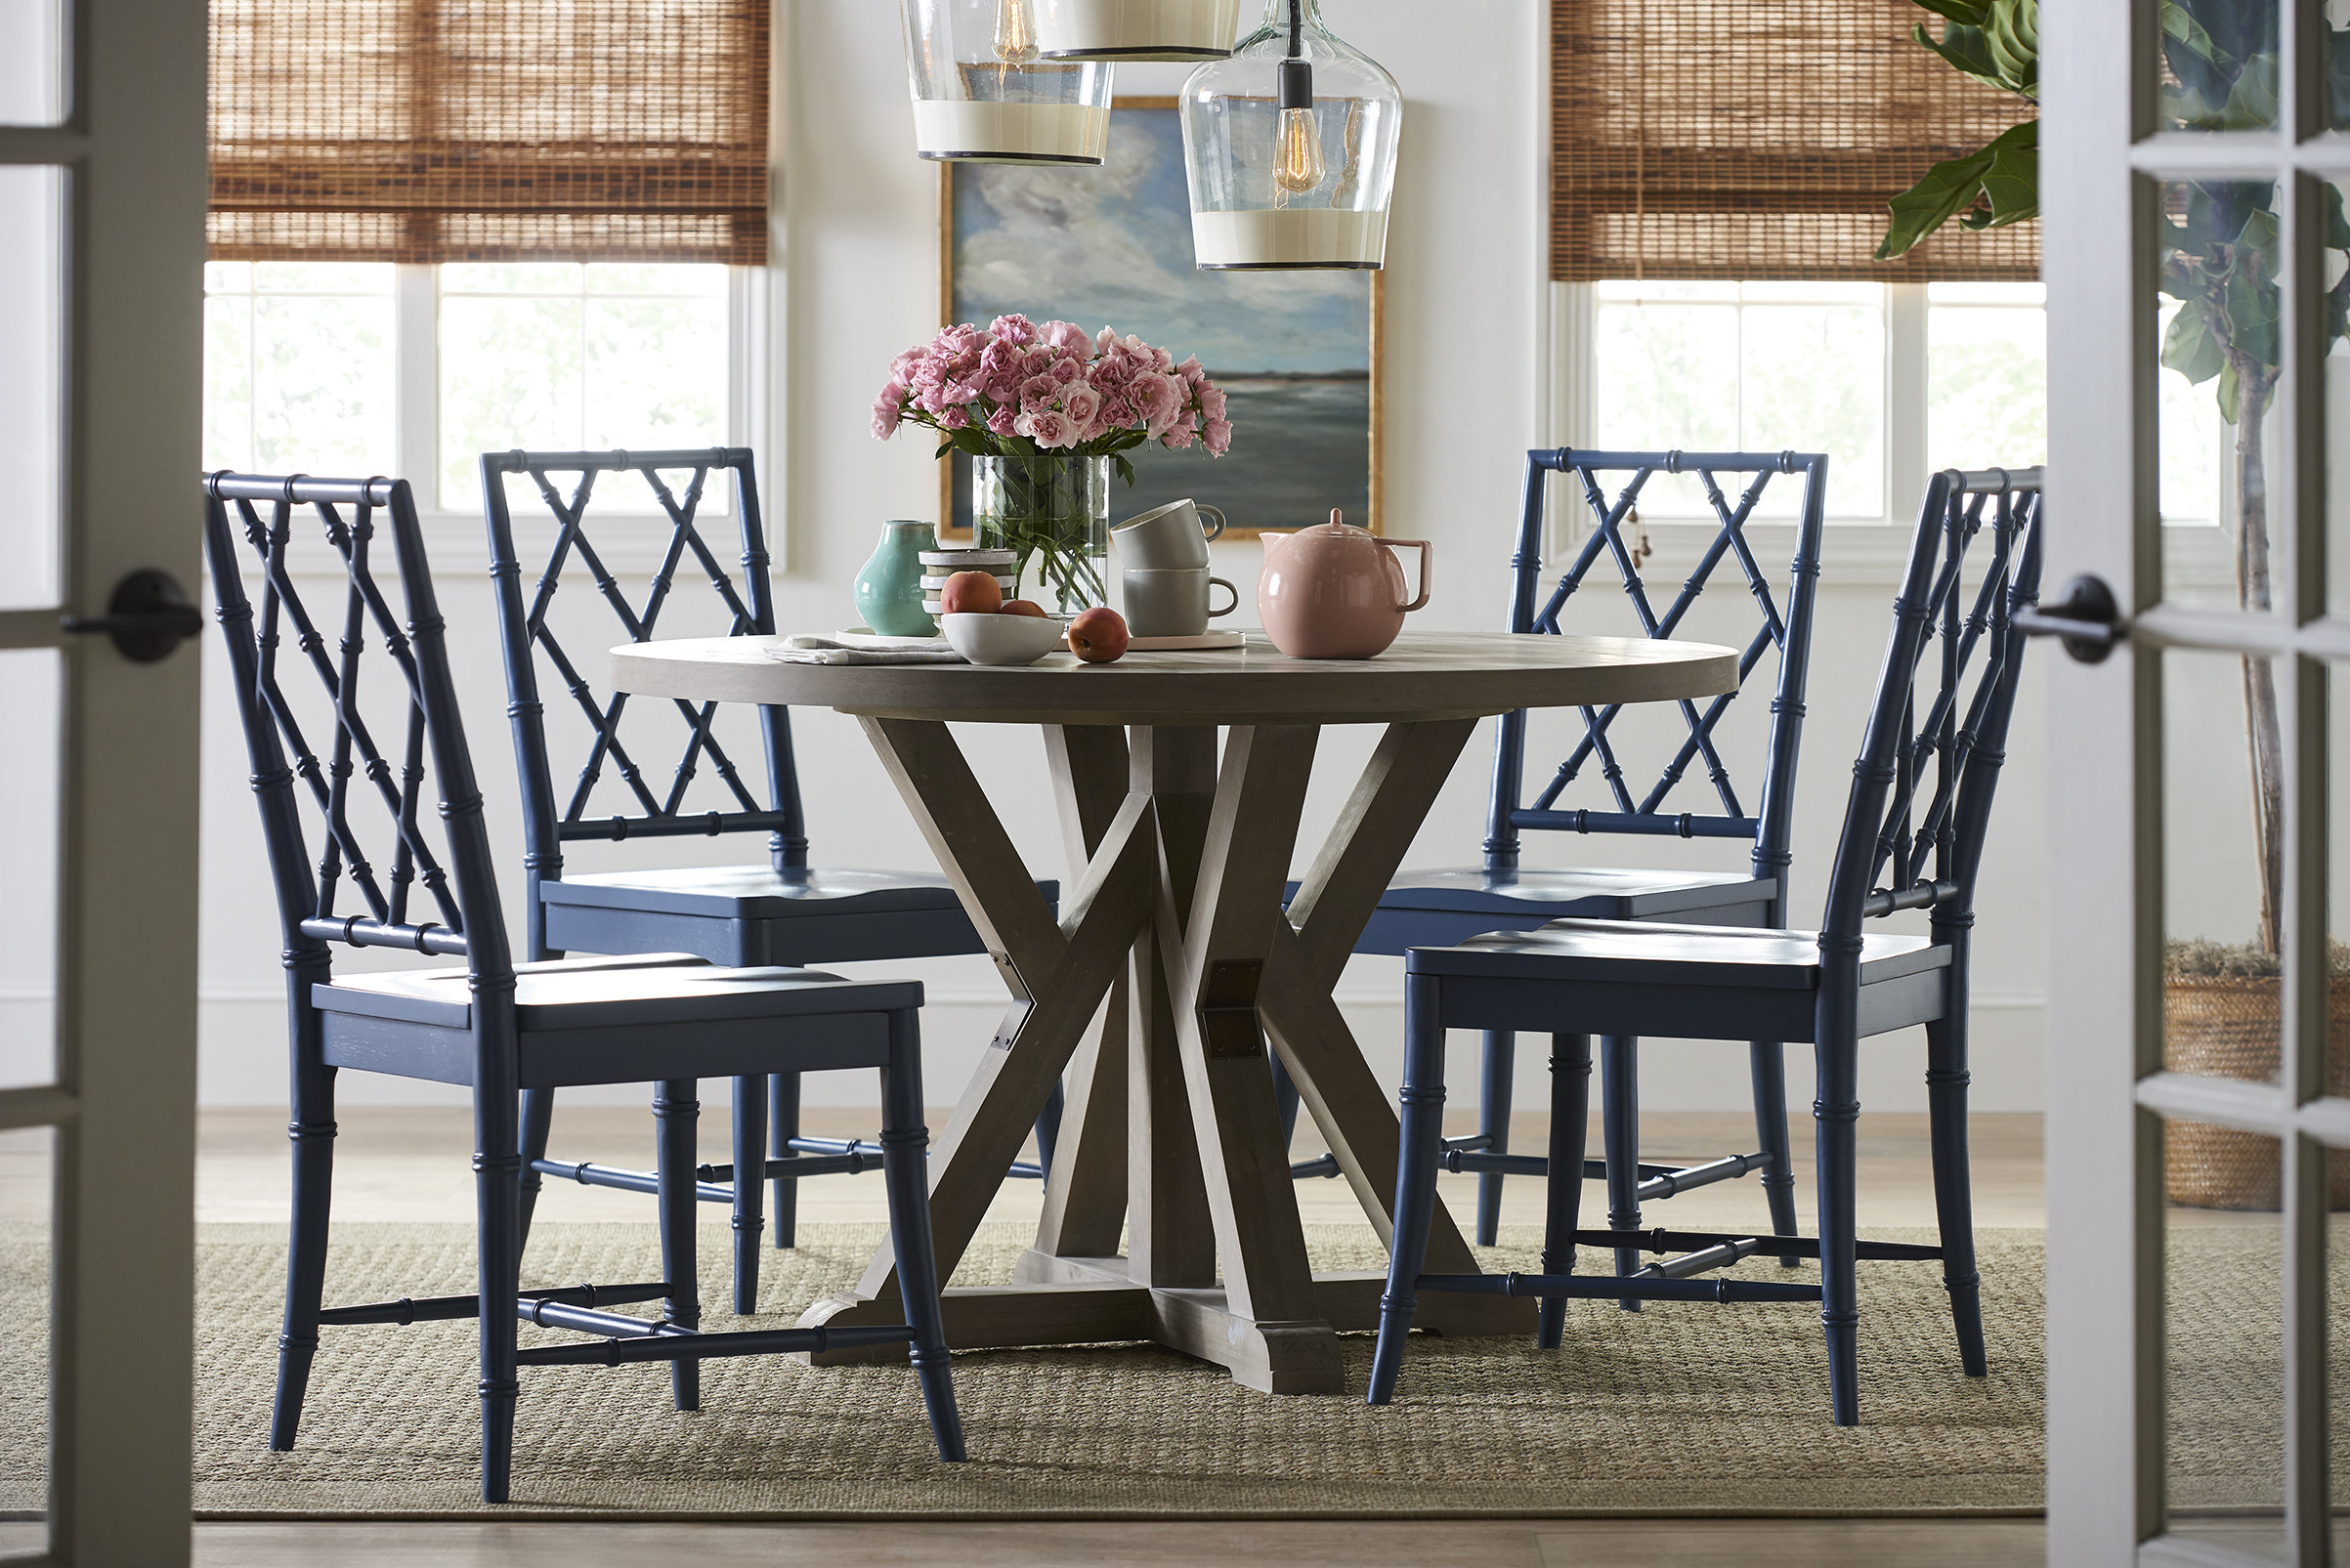 Saintcroix 3 Piece Dining Sets With Latest Younghouselove 5 Piece Dining Set & Reviews (View 20 of 25)